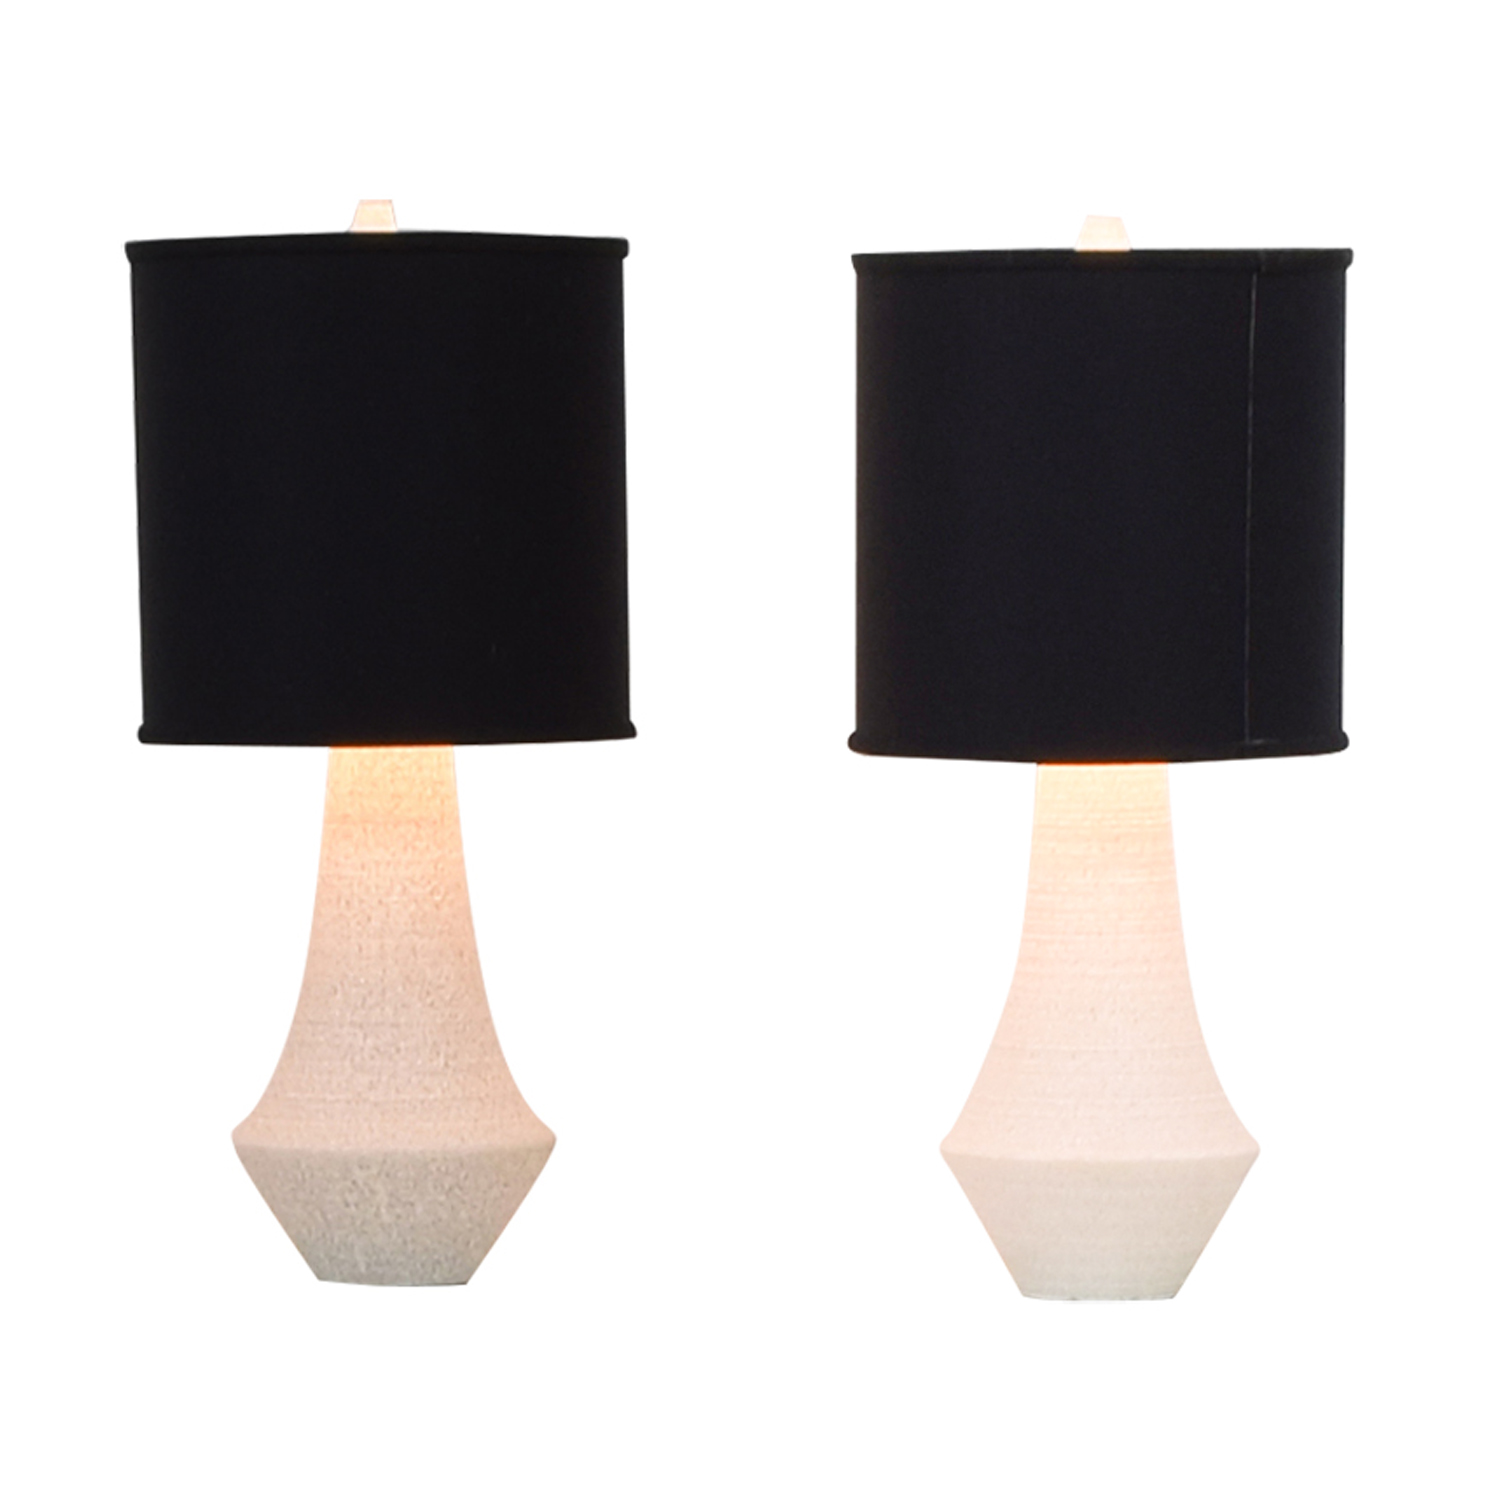 buy Serena & Lily White & Black Table Lamp Serena & Lily Lamps